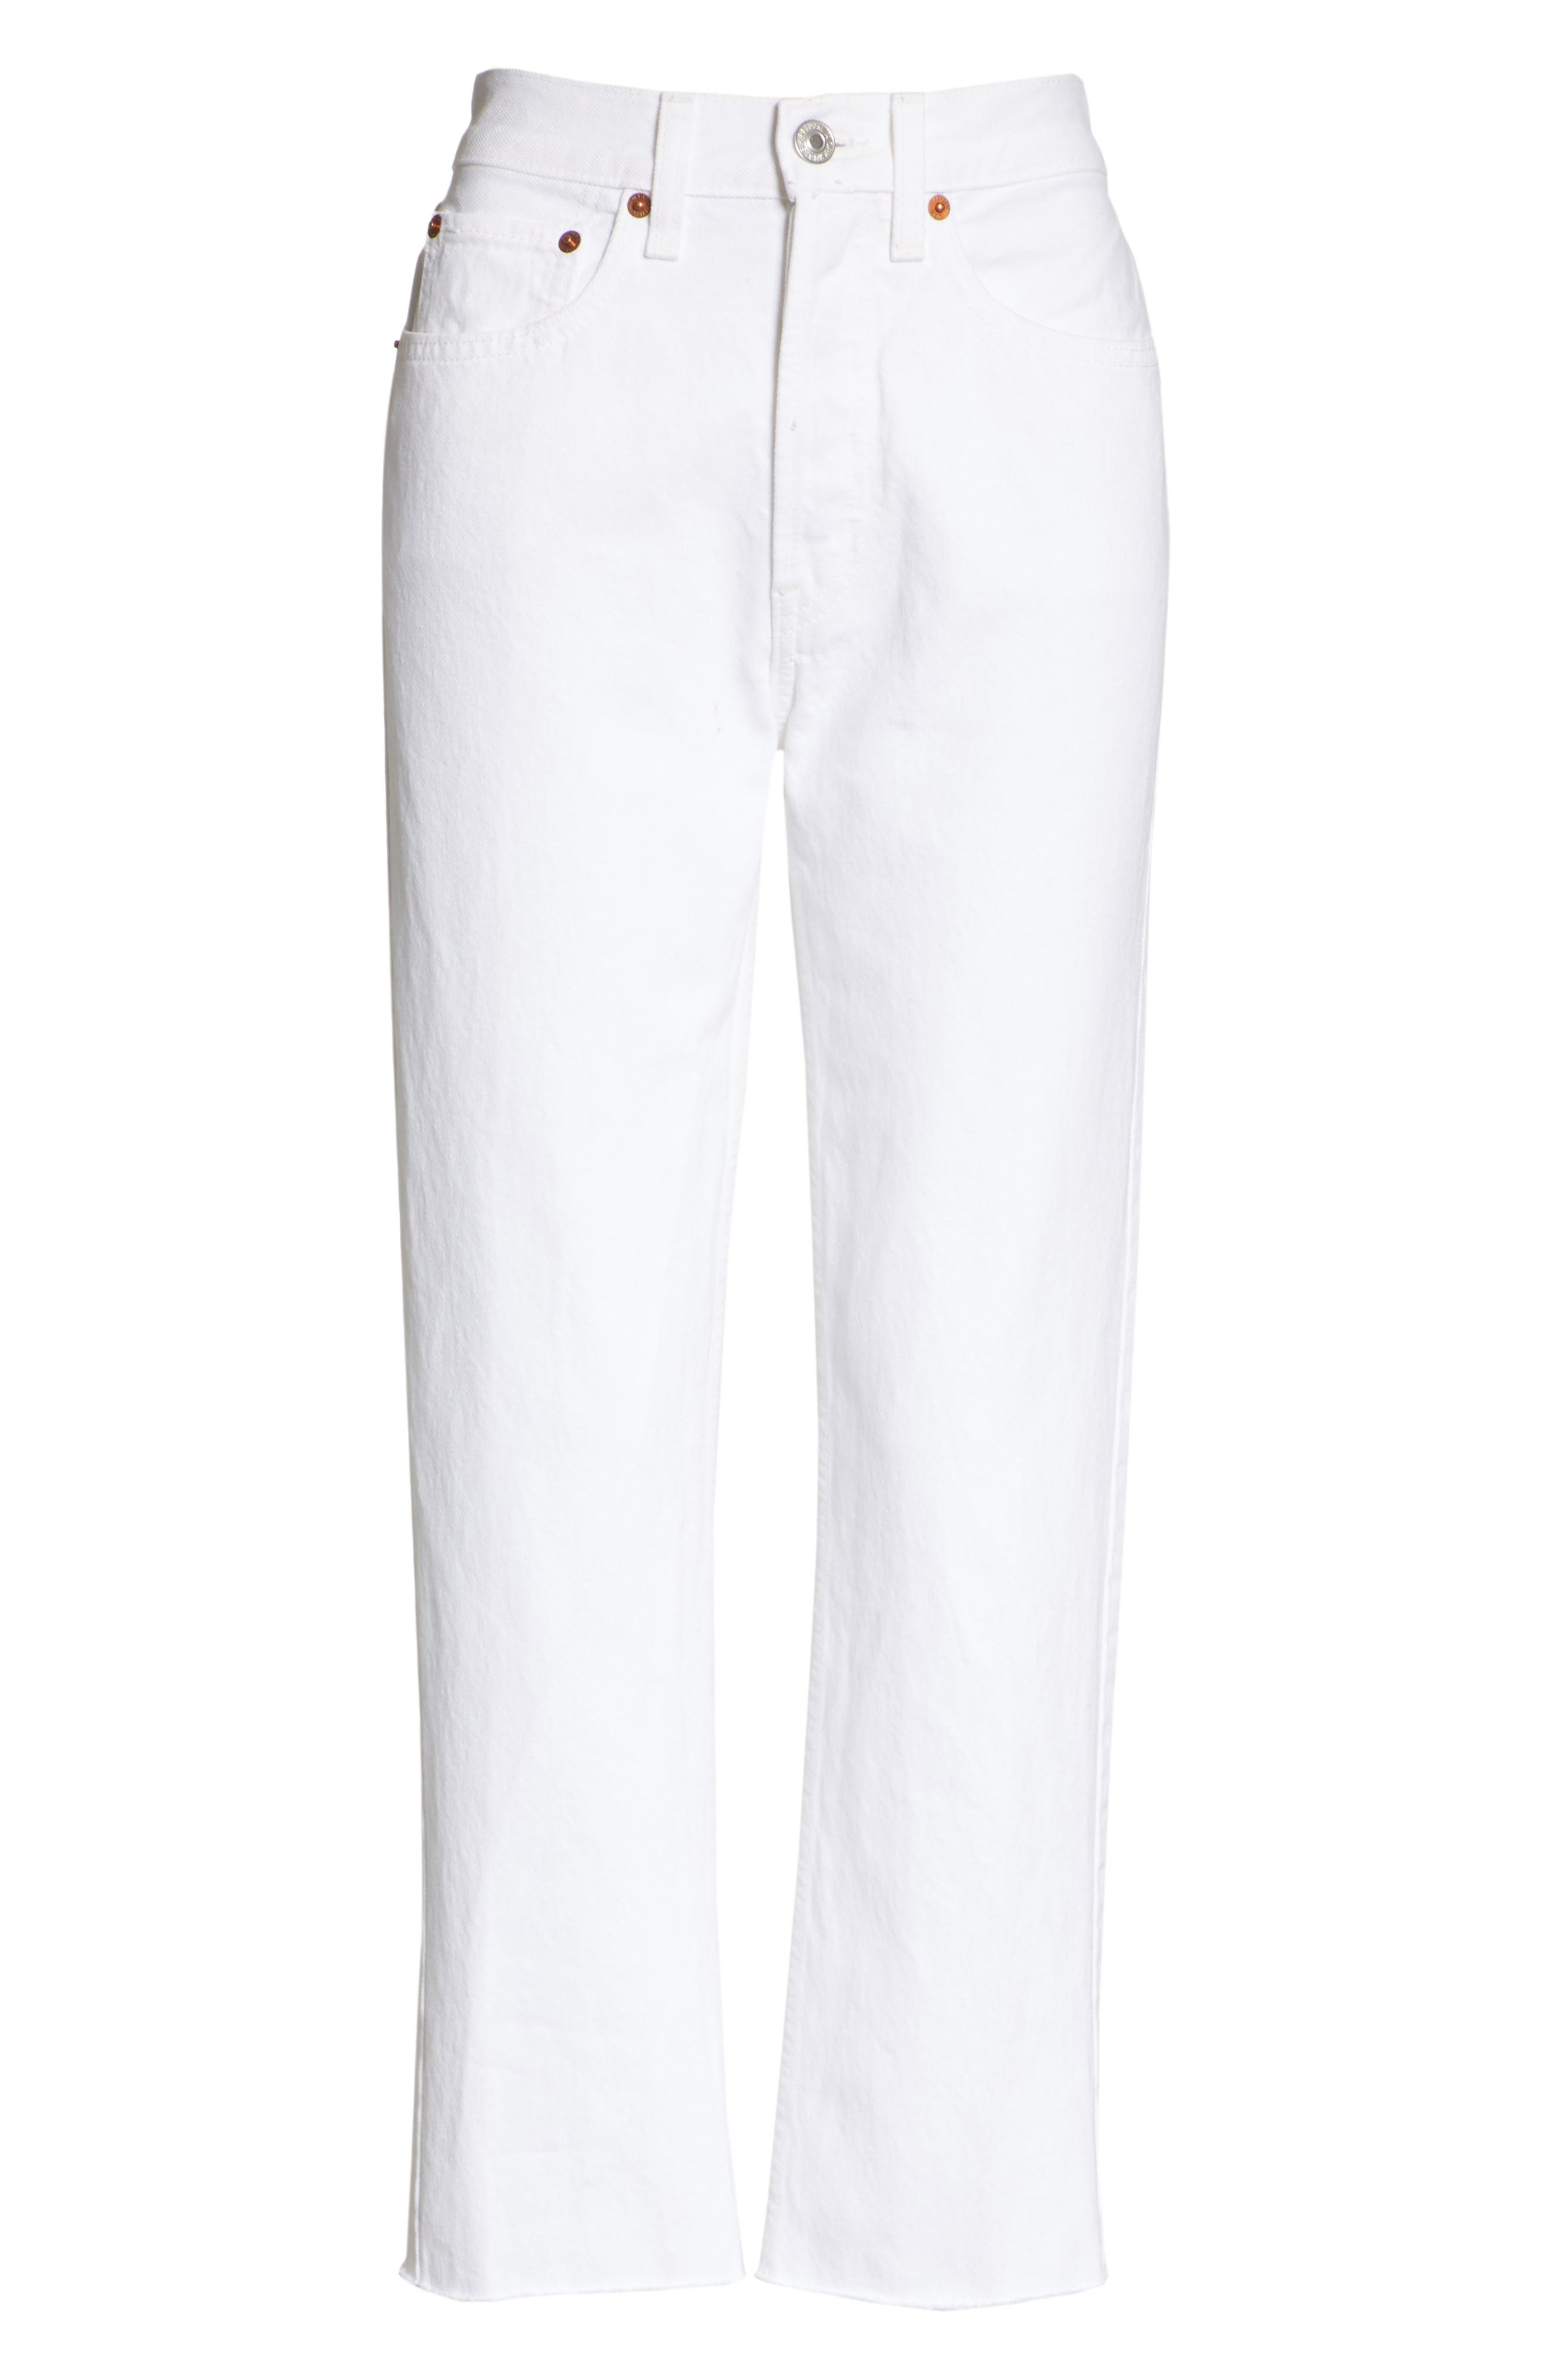 Originals High Waist Stove Pipe Jeans,                             Alternate thumbnail 7, color,                             WHITE